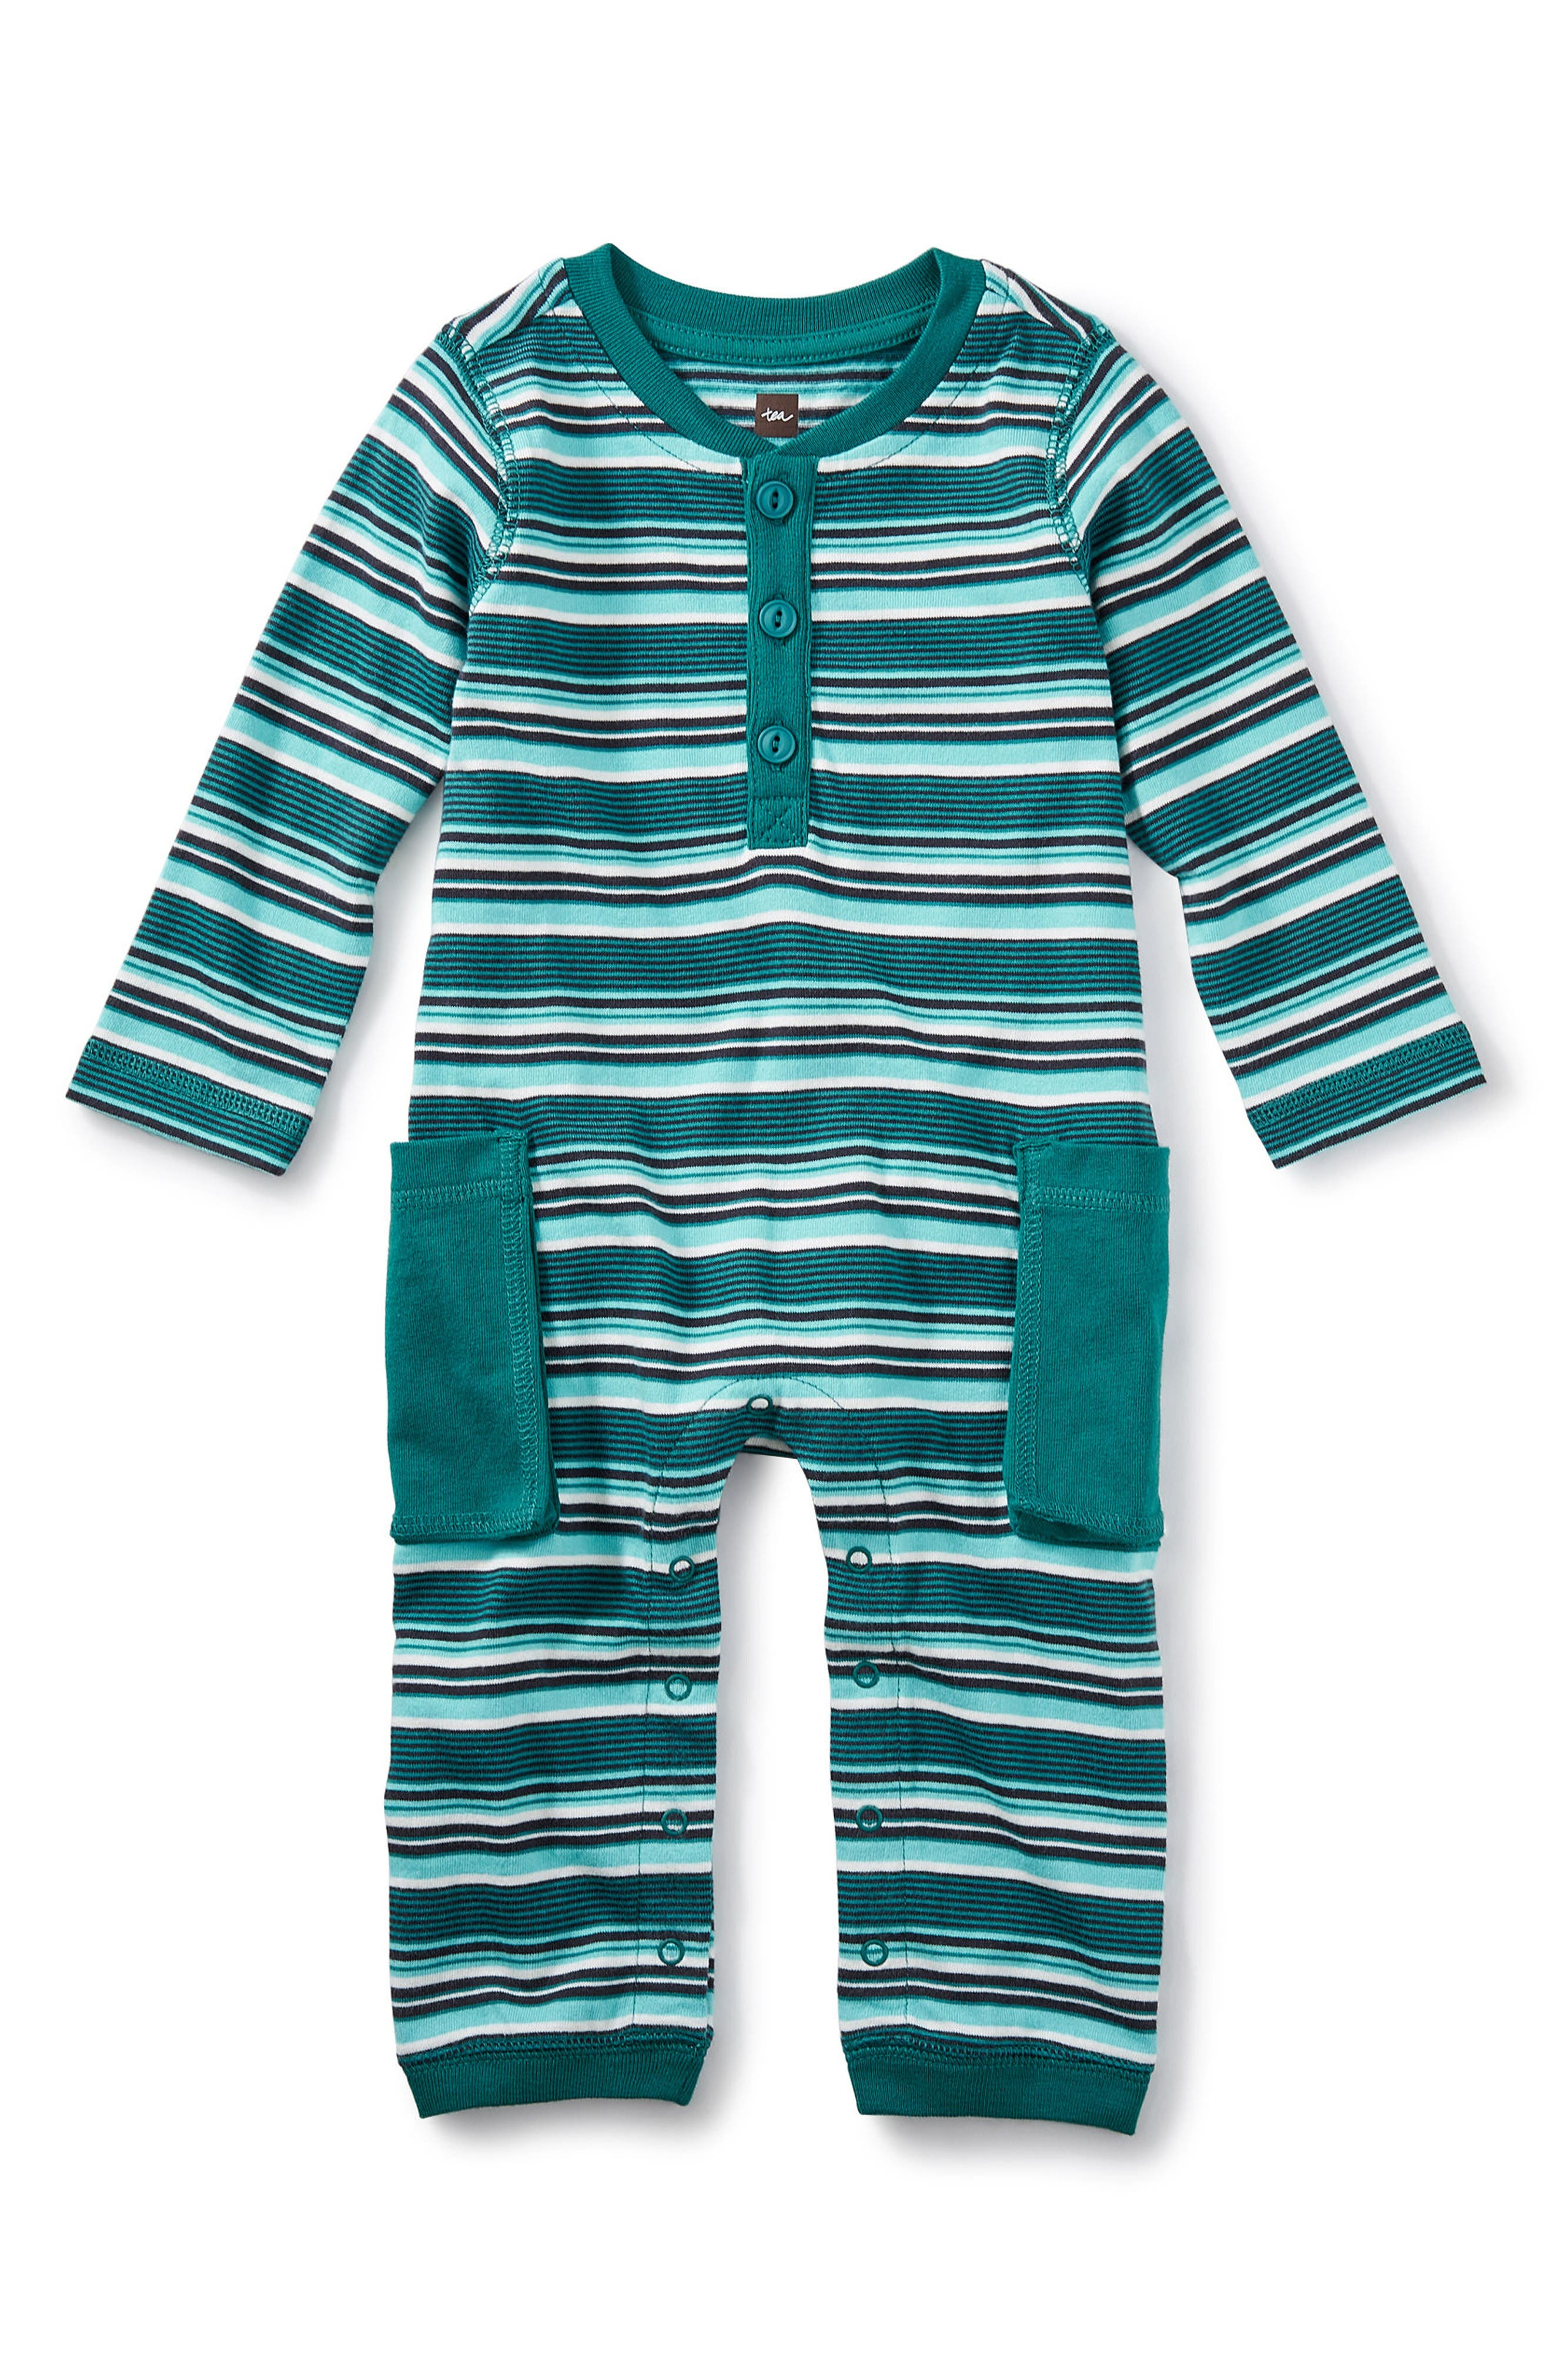 Tea Collection Ugie Cargo Romper (Baby Boys)